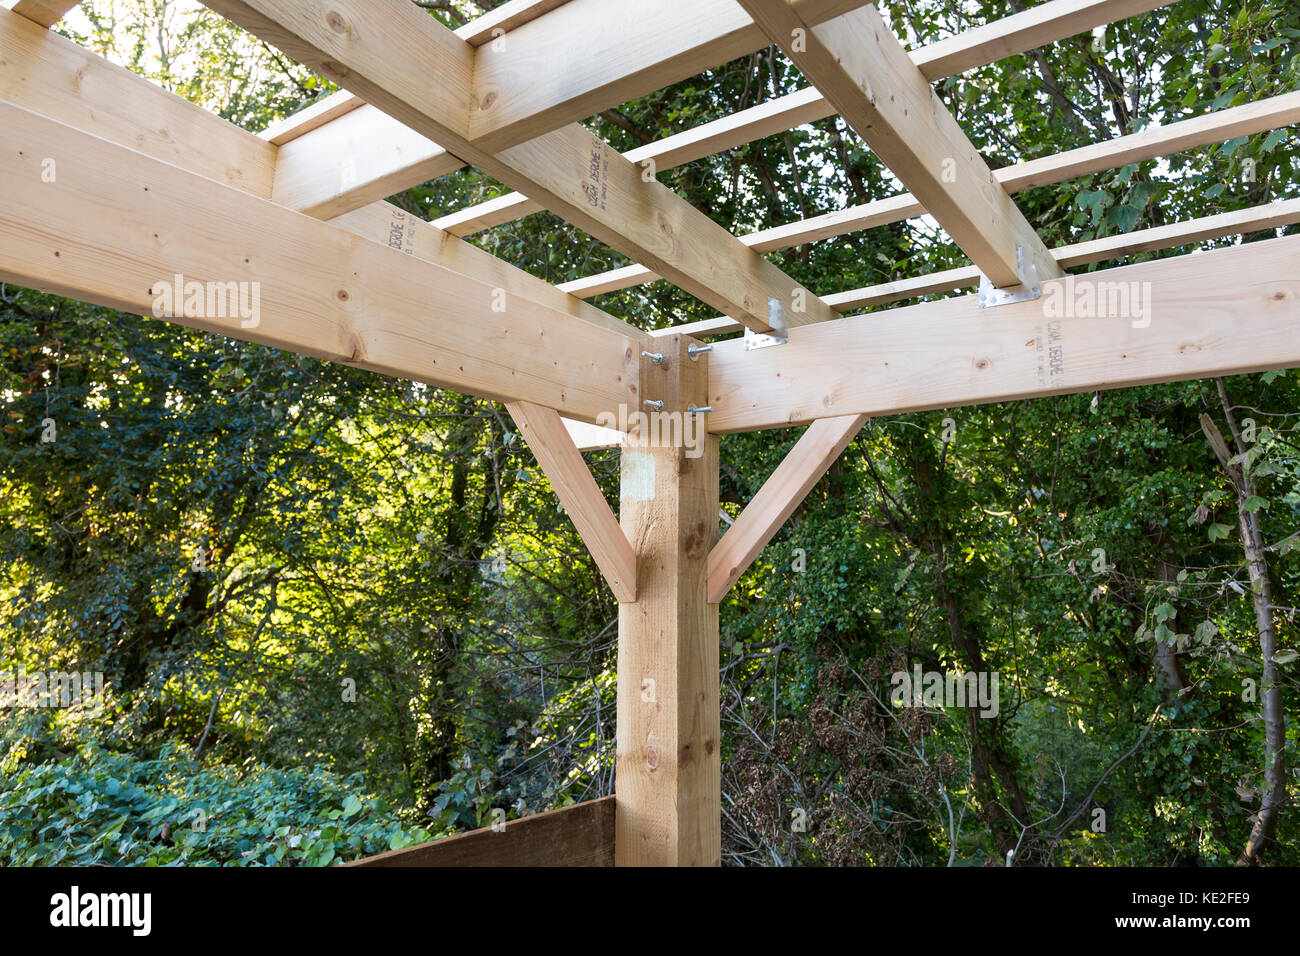 Timber Joint Stockfotos & Timber Joint Bilder - Alamy